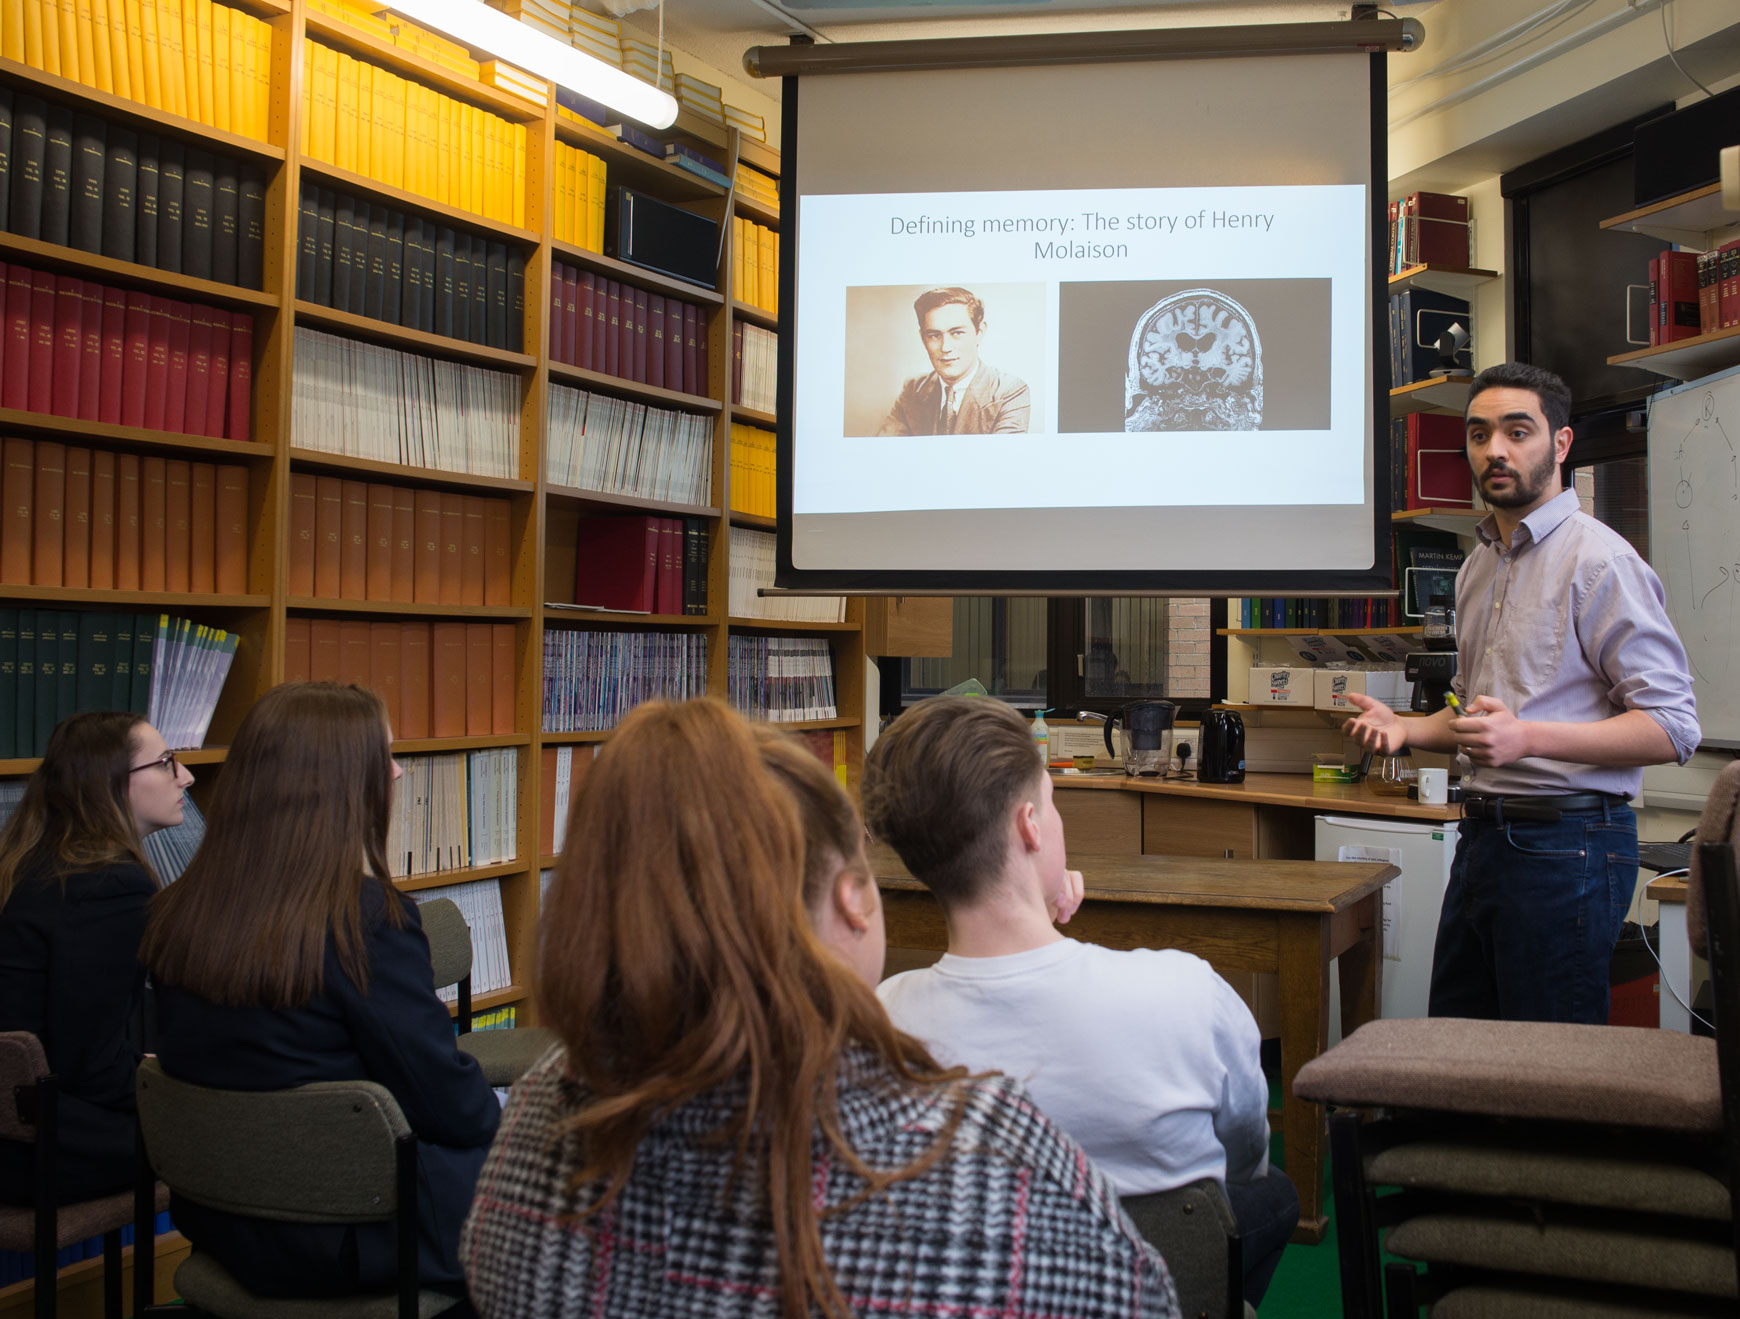 Pupils in small groups talked informally to Unit members about key concepts and challenges in brain research. Here, Unit scientist Mohamady El-Gaby moderates a discussion on the neuronal basis of memory.